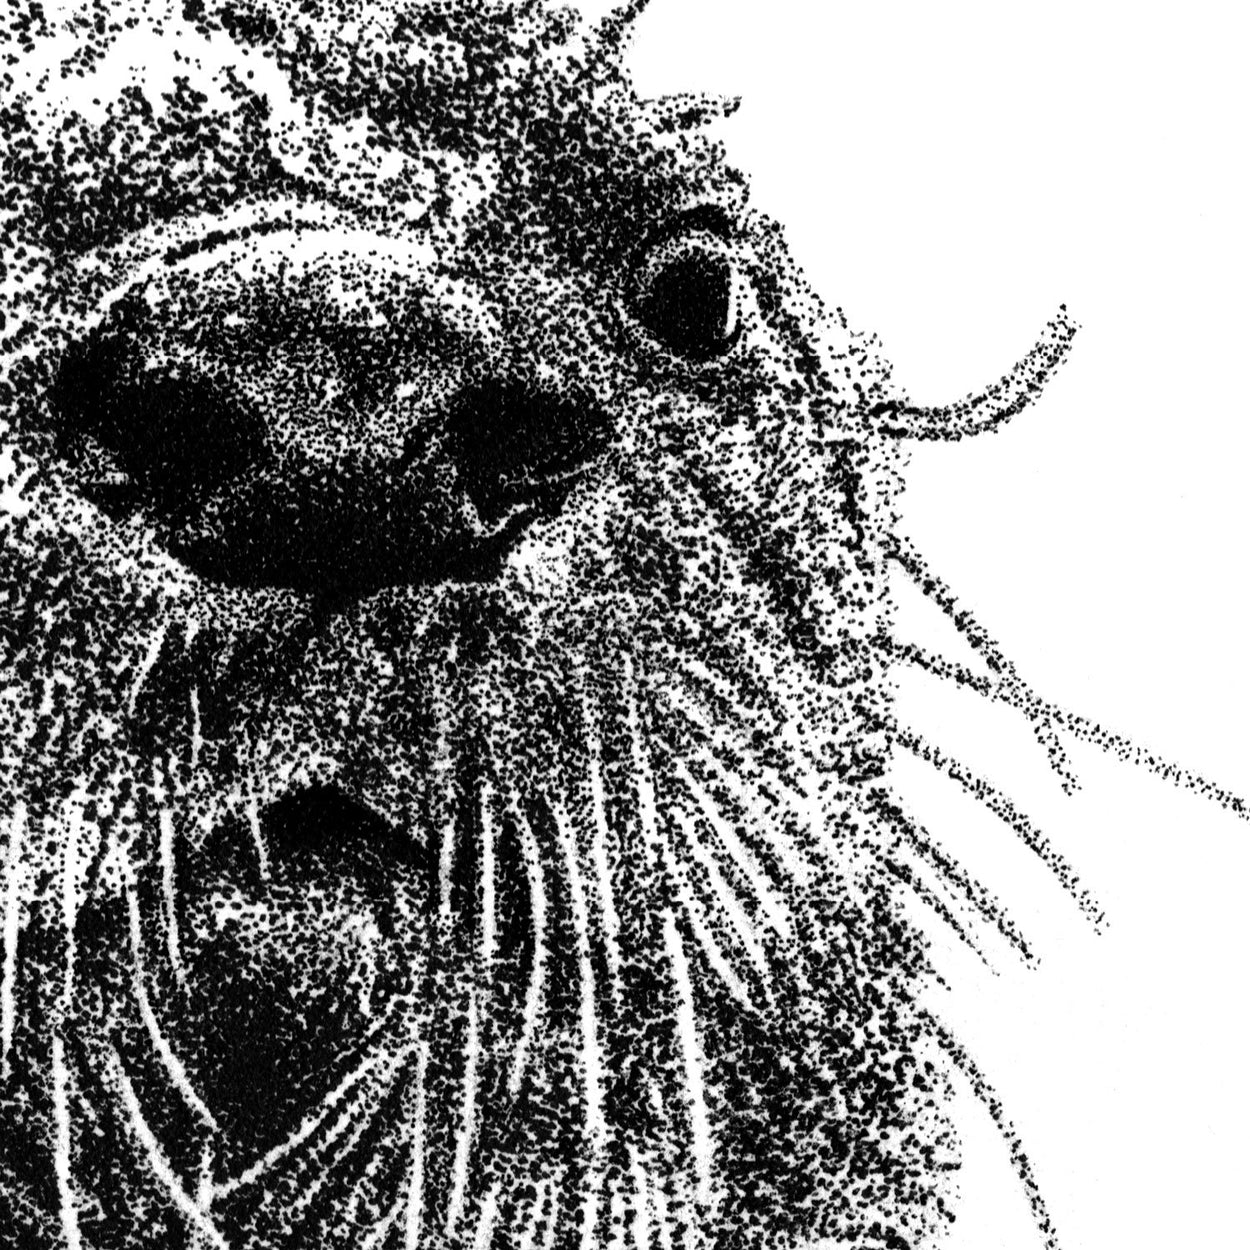 Otter Face Pen Drawing - The Thriving Wild